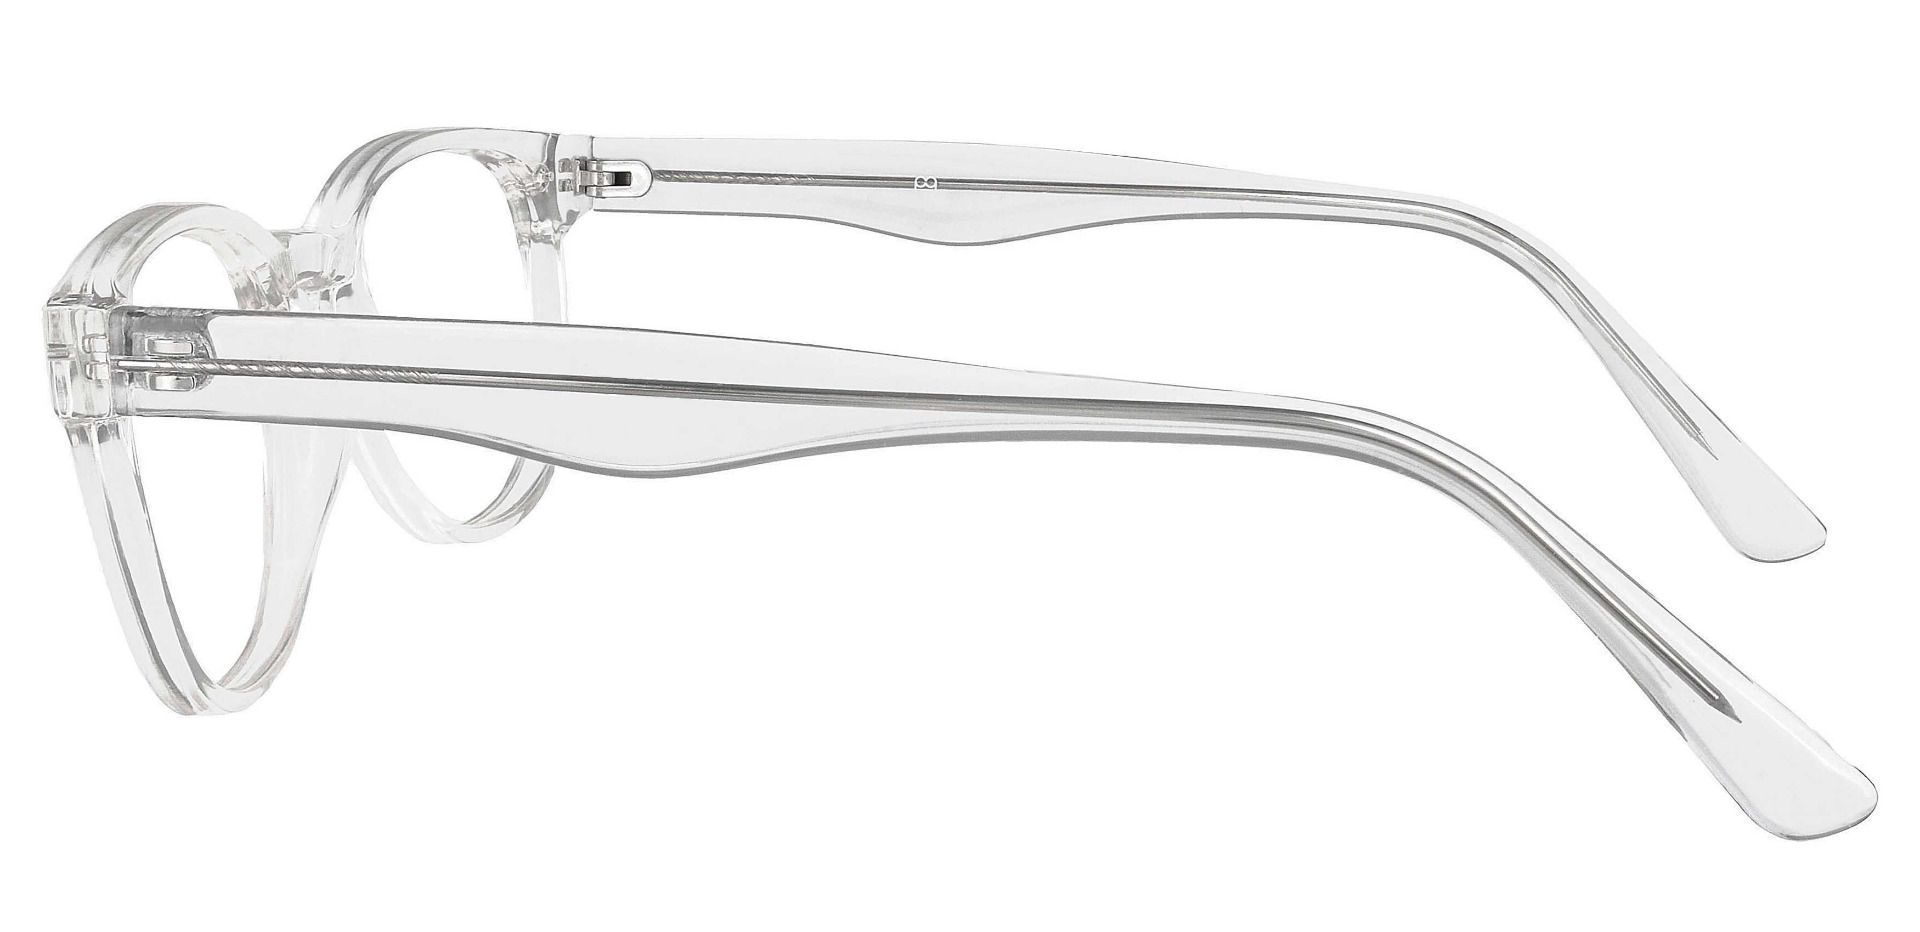 Swirl Classic Square Eyeglasses Frame - Clear